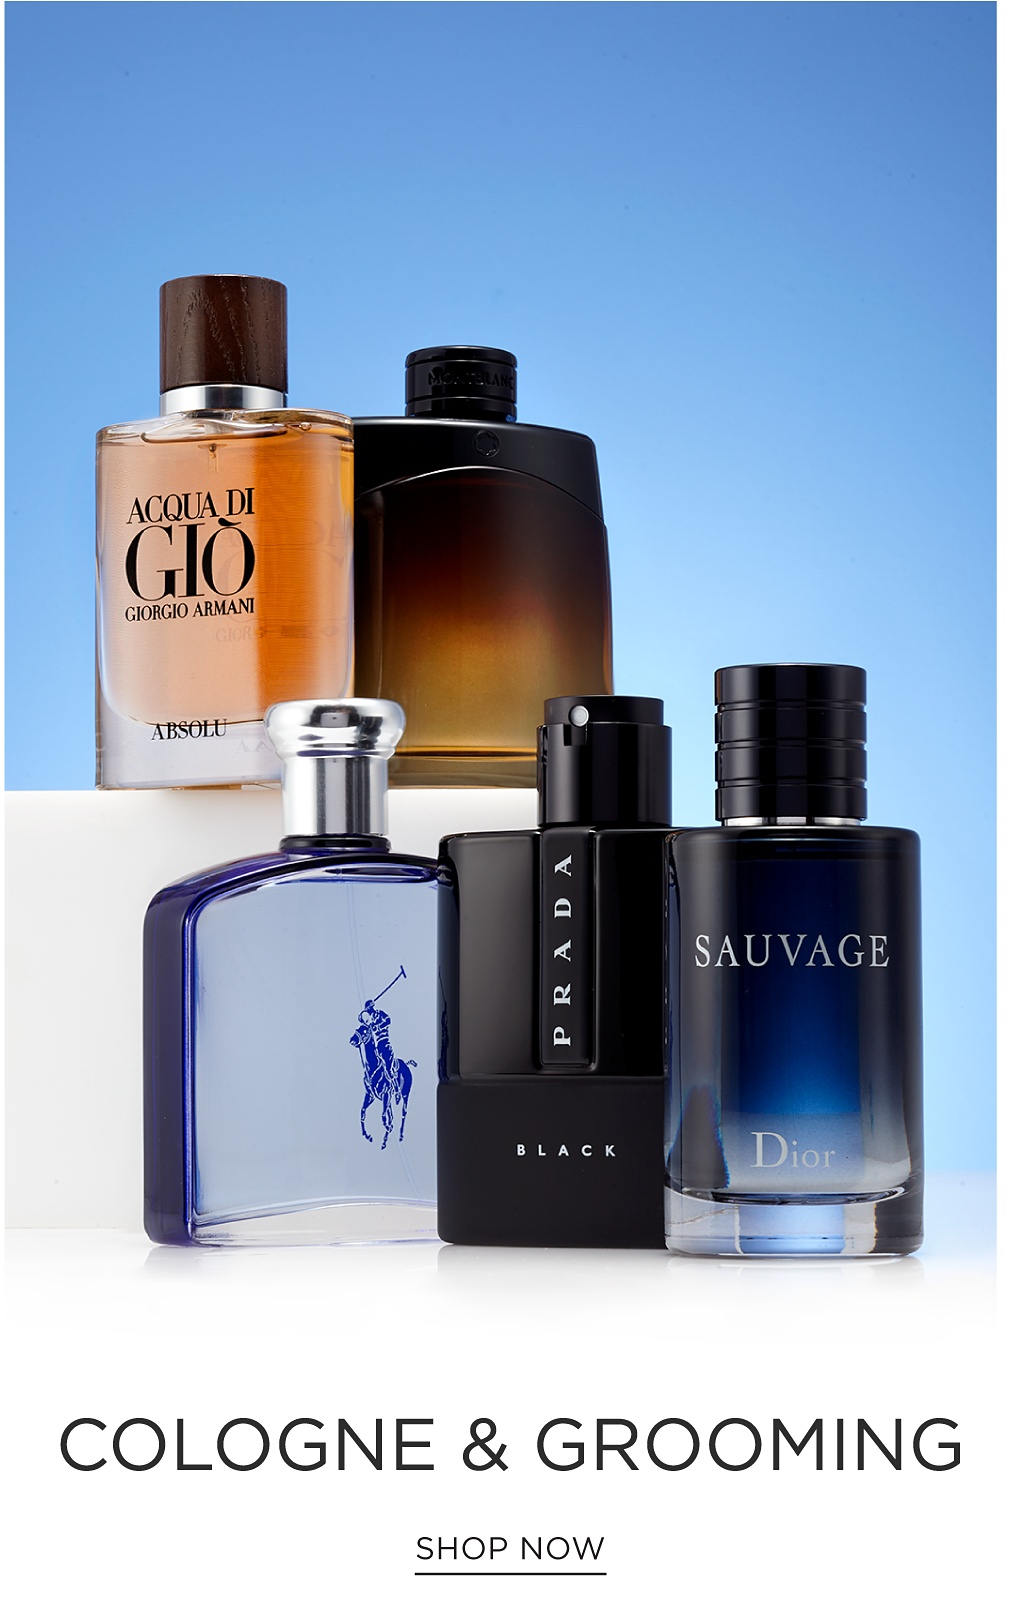 An assortment of men's cologne bottles. Cologne & Grooming. Shop now